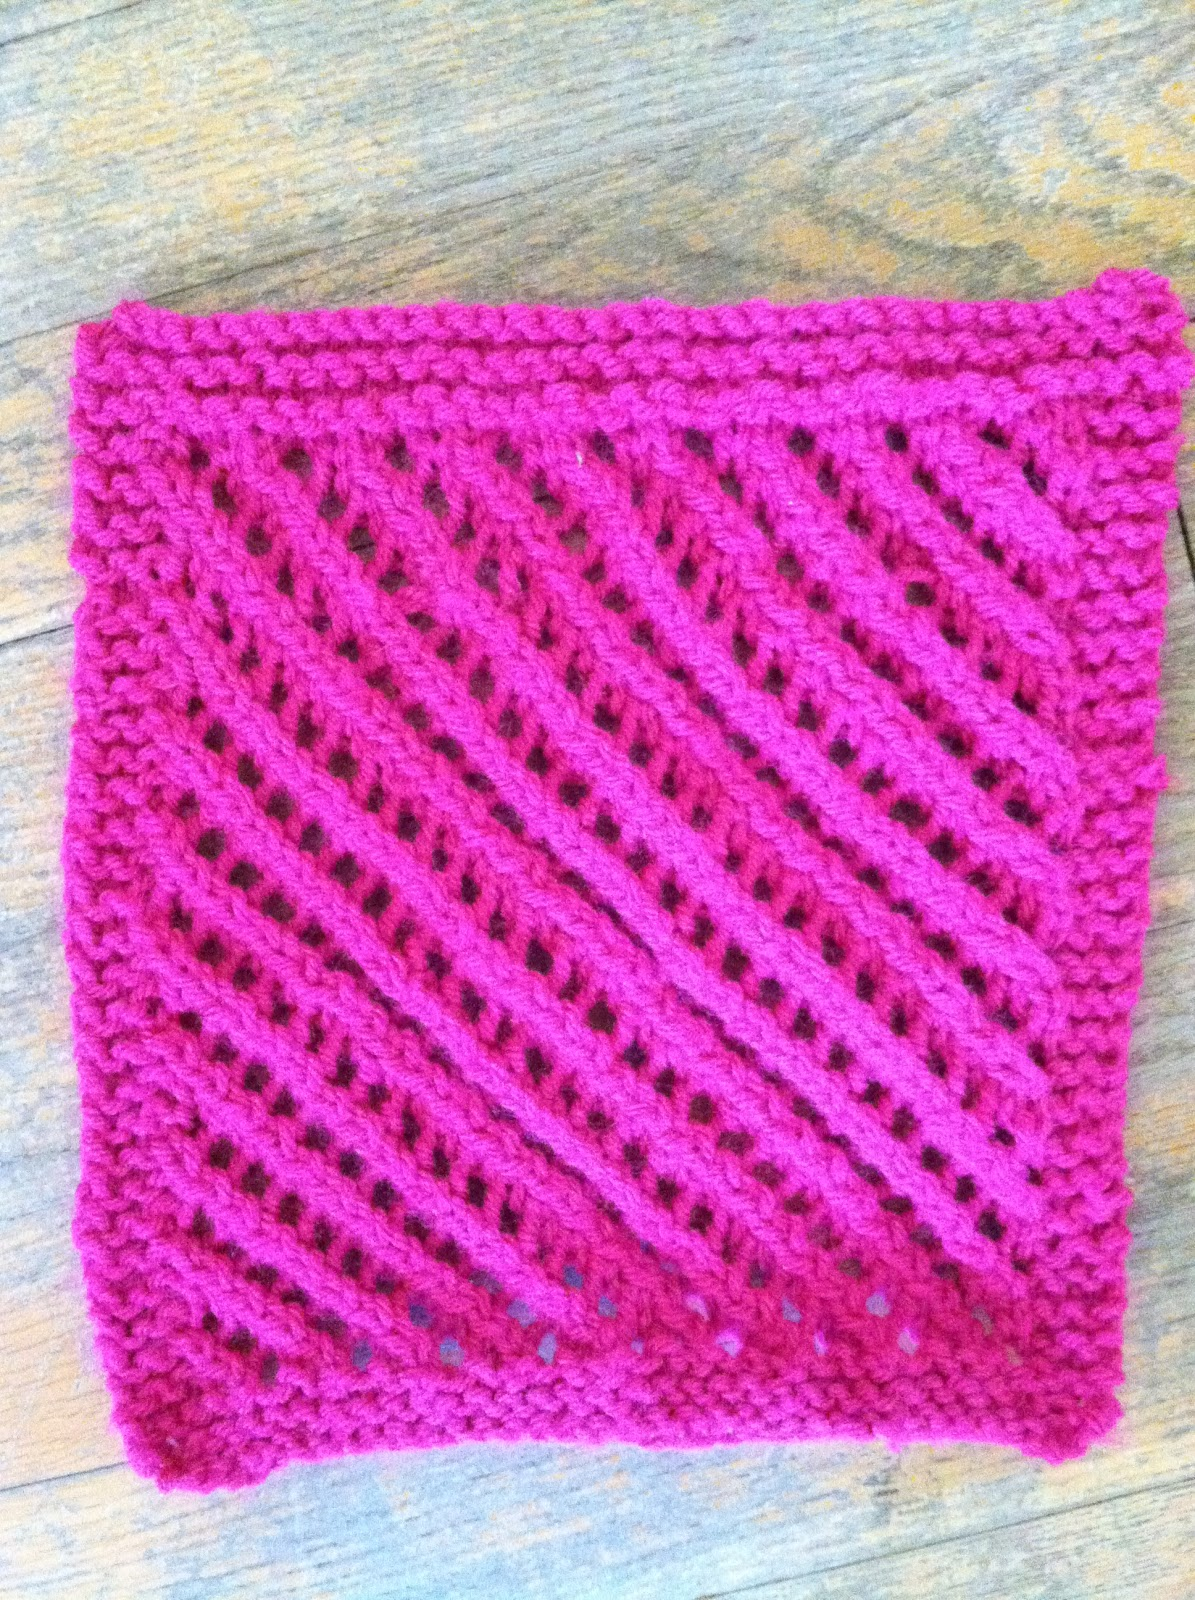 Free Knitting Pattern Afghan Sampler : Cats and Crafts: Crocheted/Knitted Sampler Square Afghan